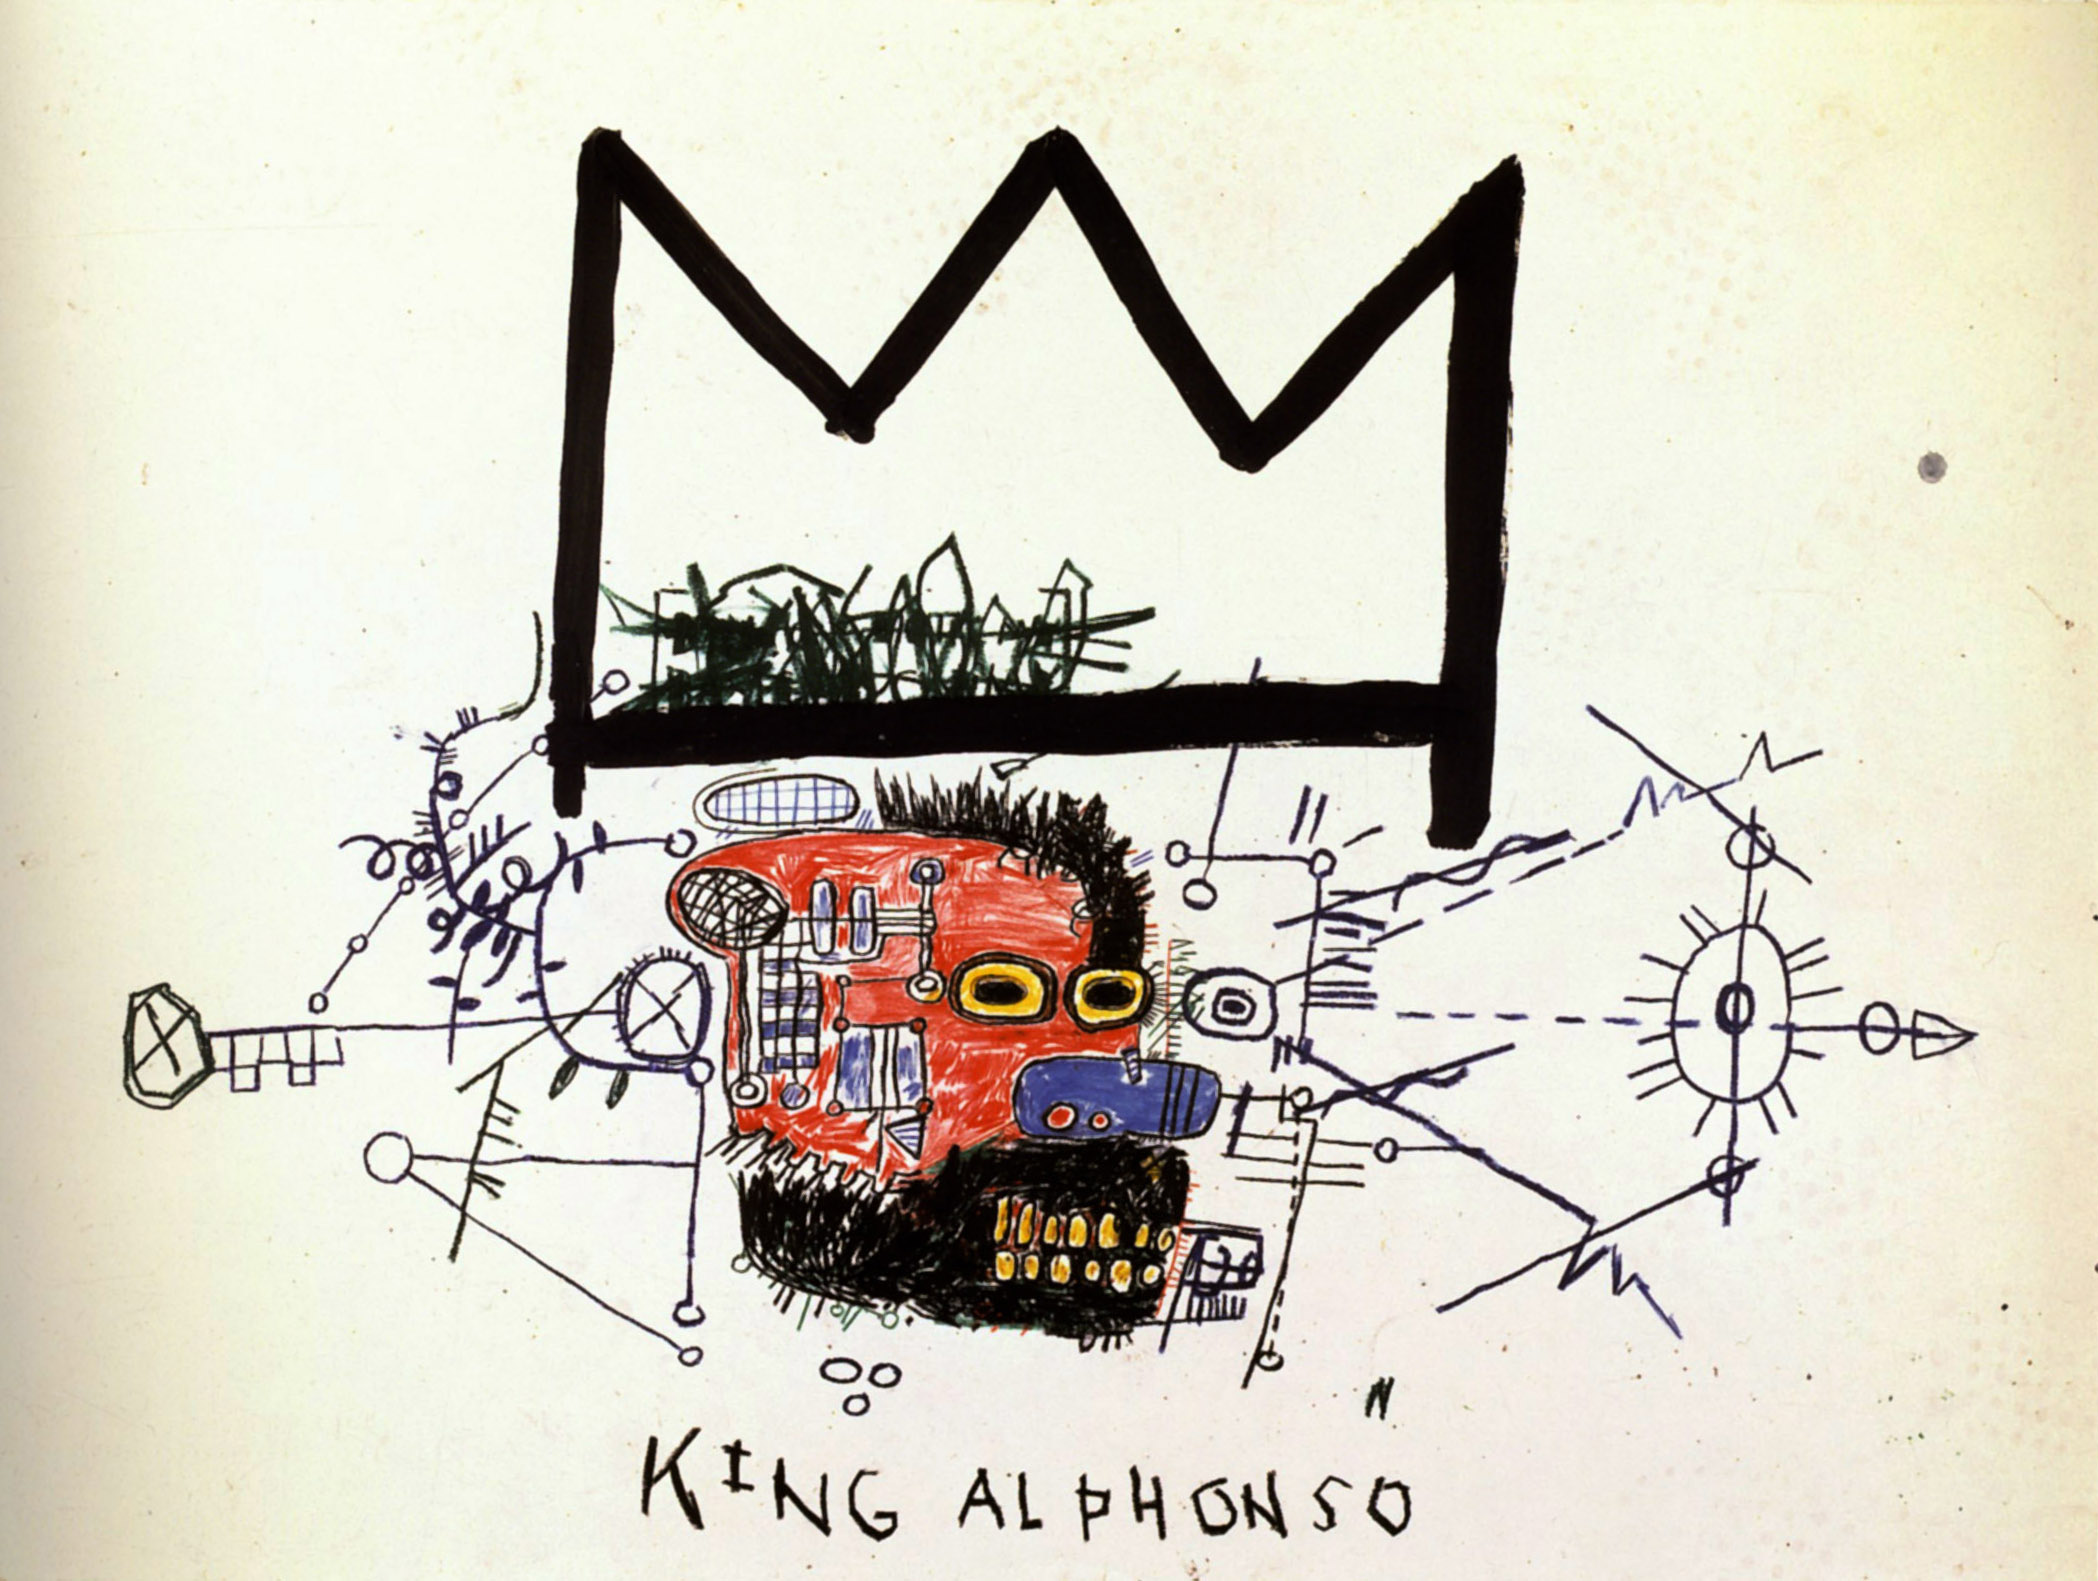 25 Years Ago Today, Jean-Michel Basquiat Died: king-alphonso.jpg